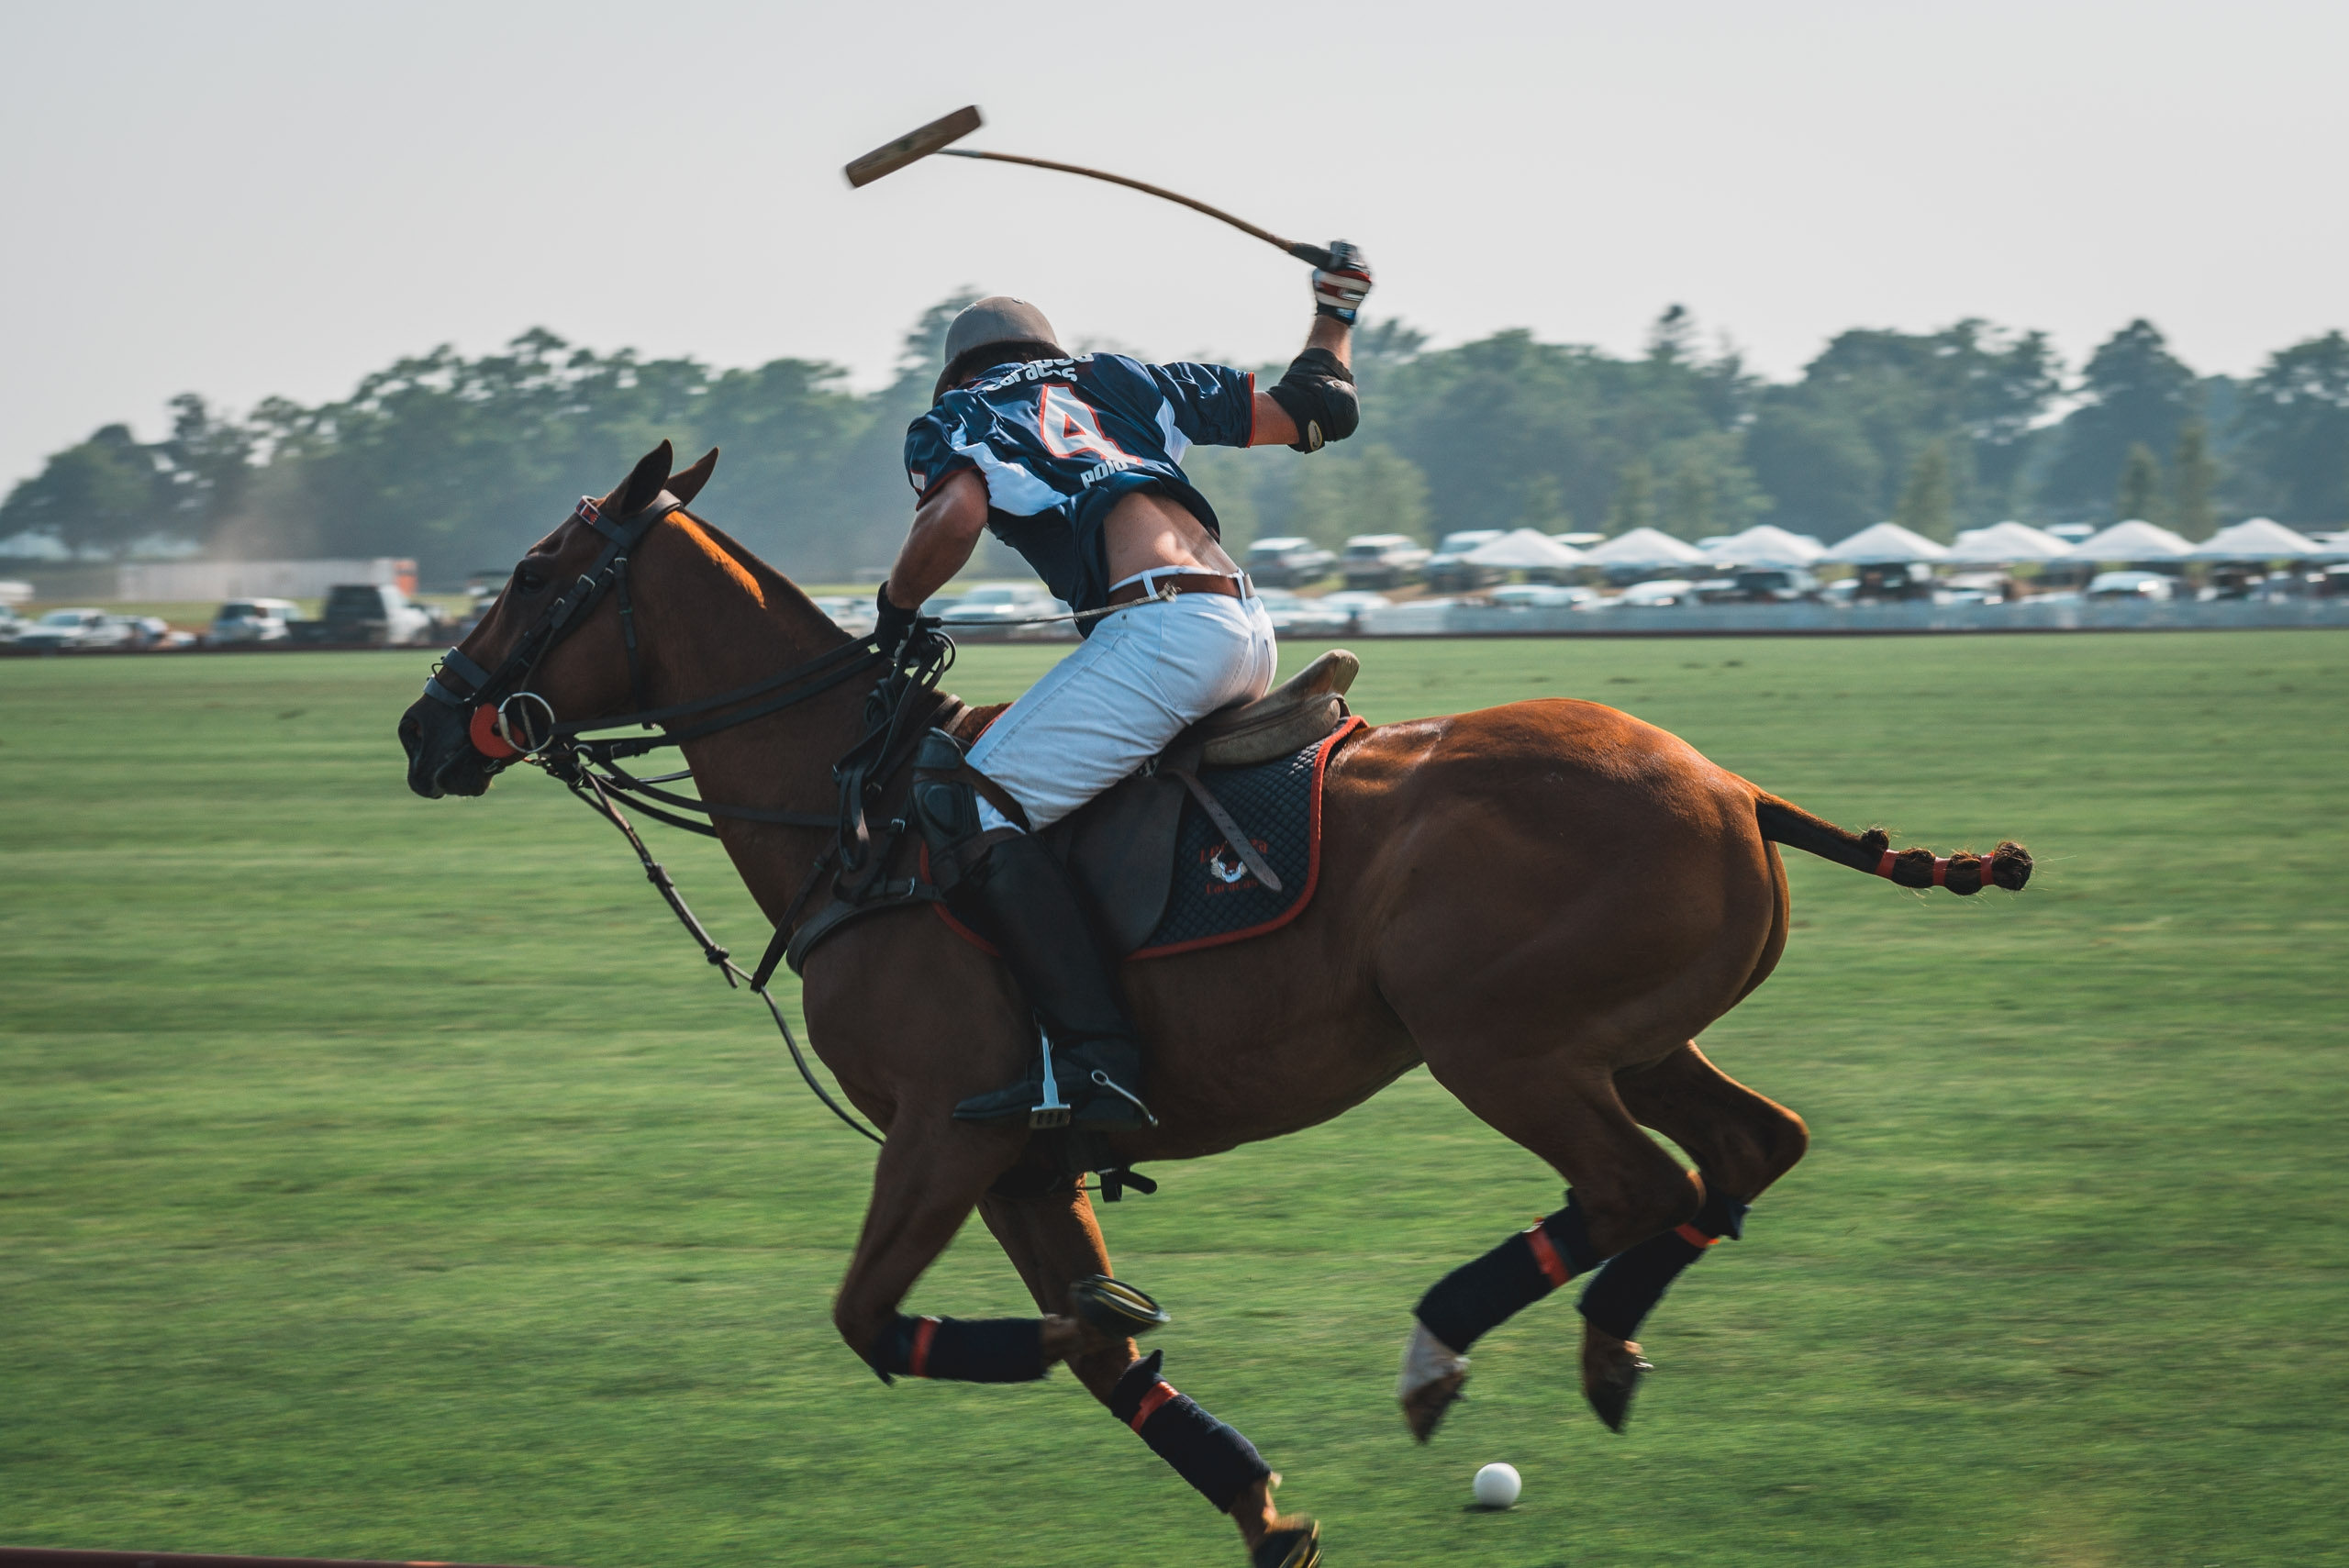 Polo at Full Speed